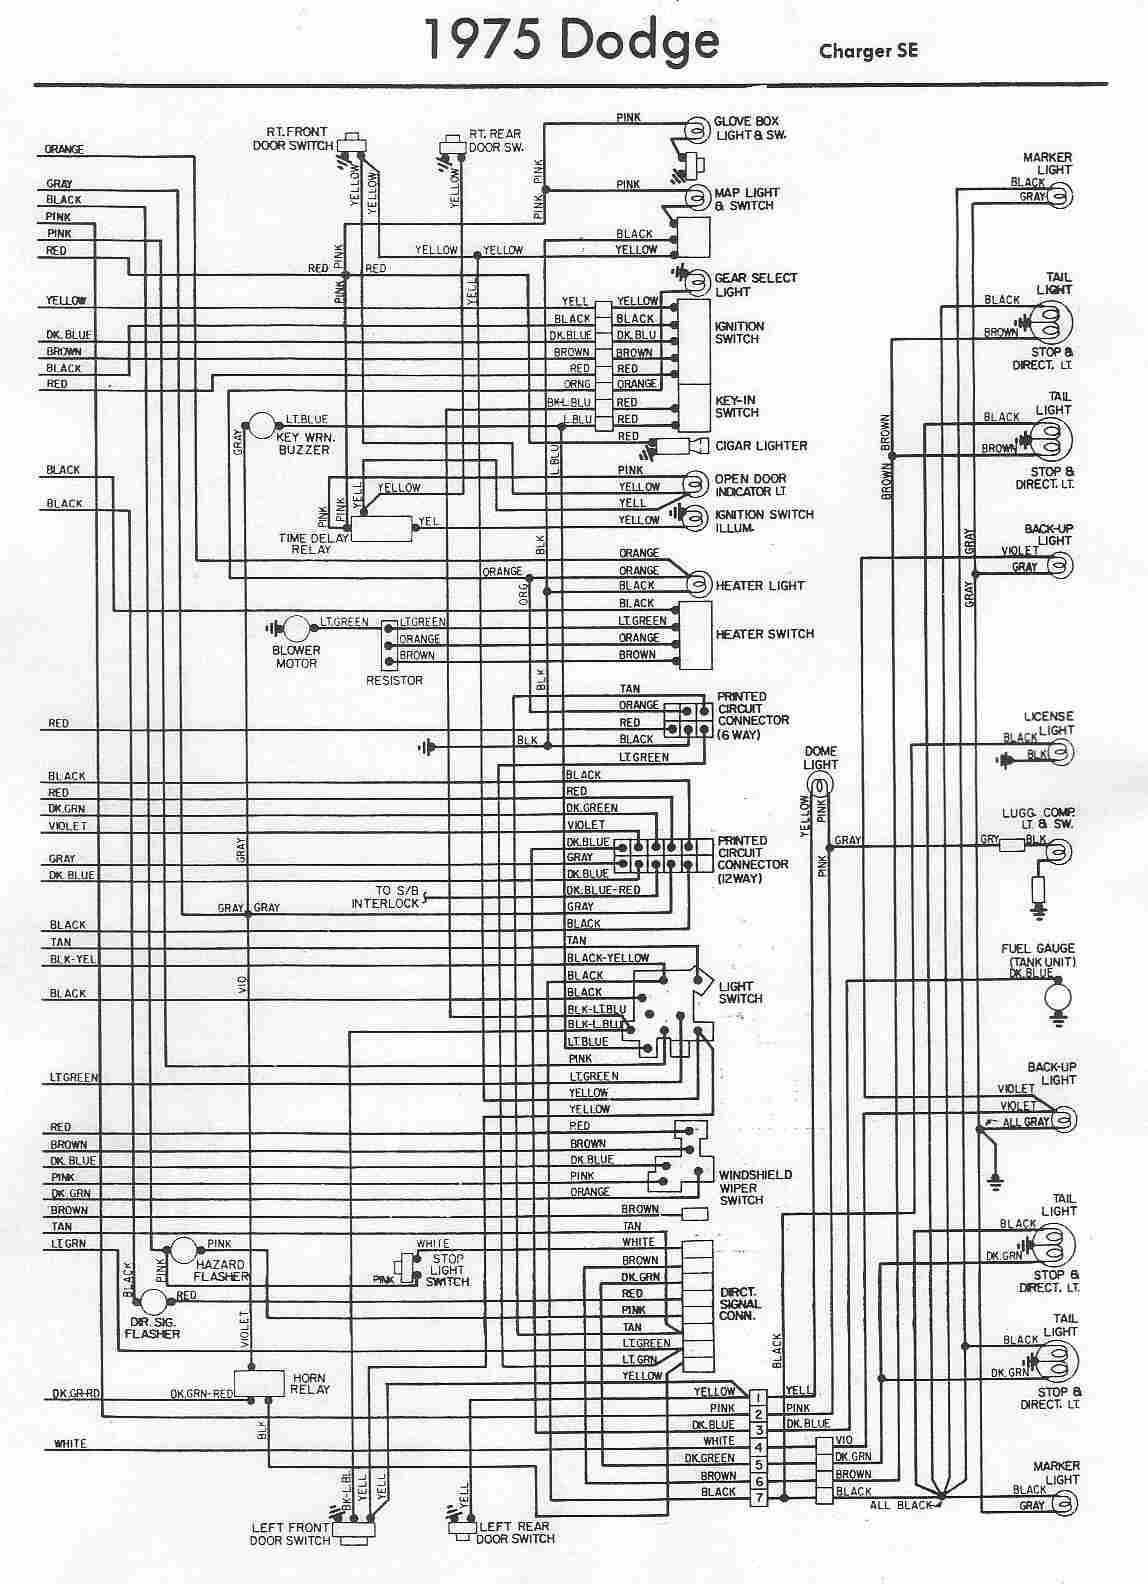 1988 Dodge Dakota Wiring Diagram For Starter Mopar Car Manuals Diagrams Pdf Fault Codes Download